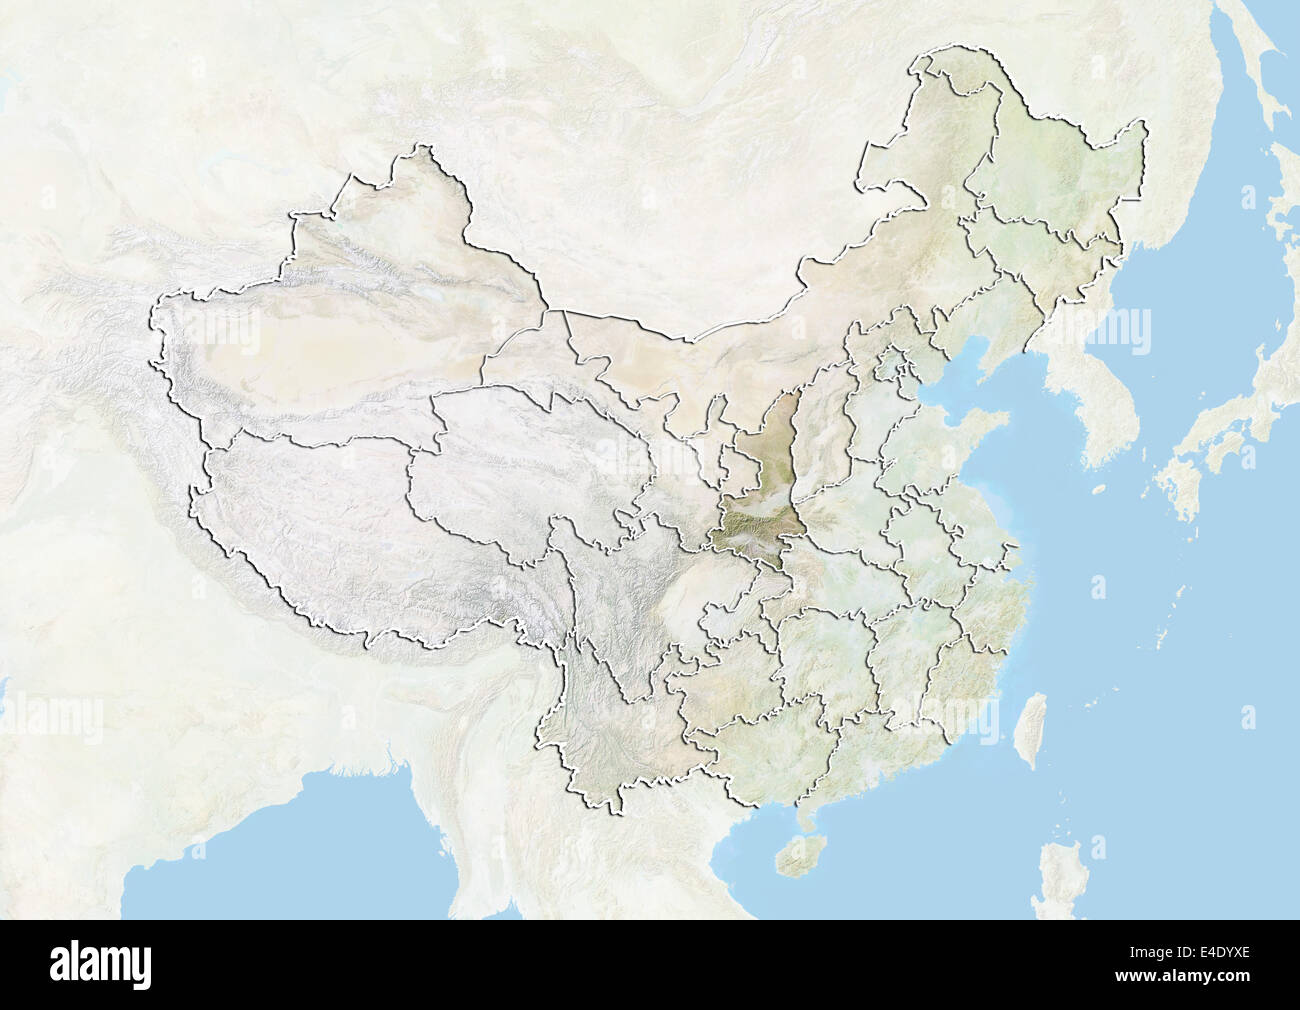 China and the province of shaanxi relief map stock photo 71607382 china and the province of shaanxi relief map gumiabroncs Image collections